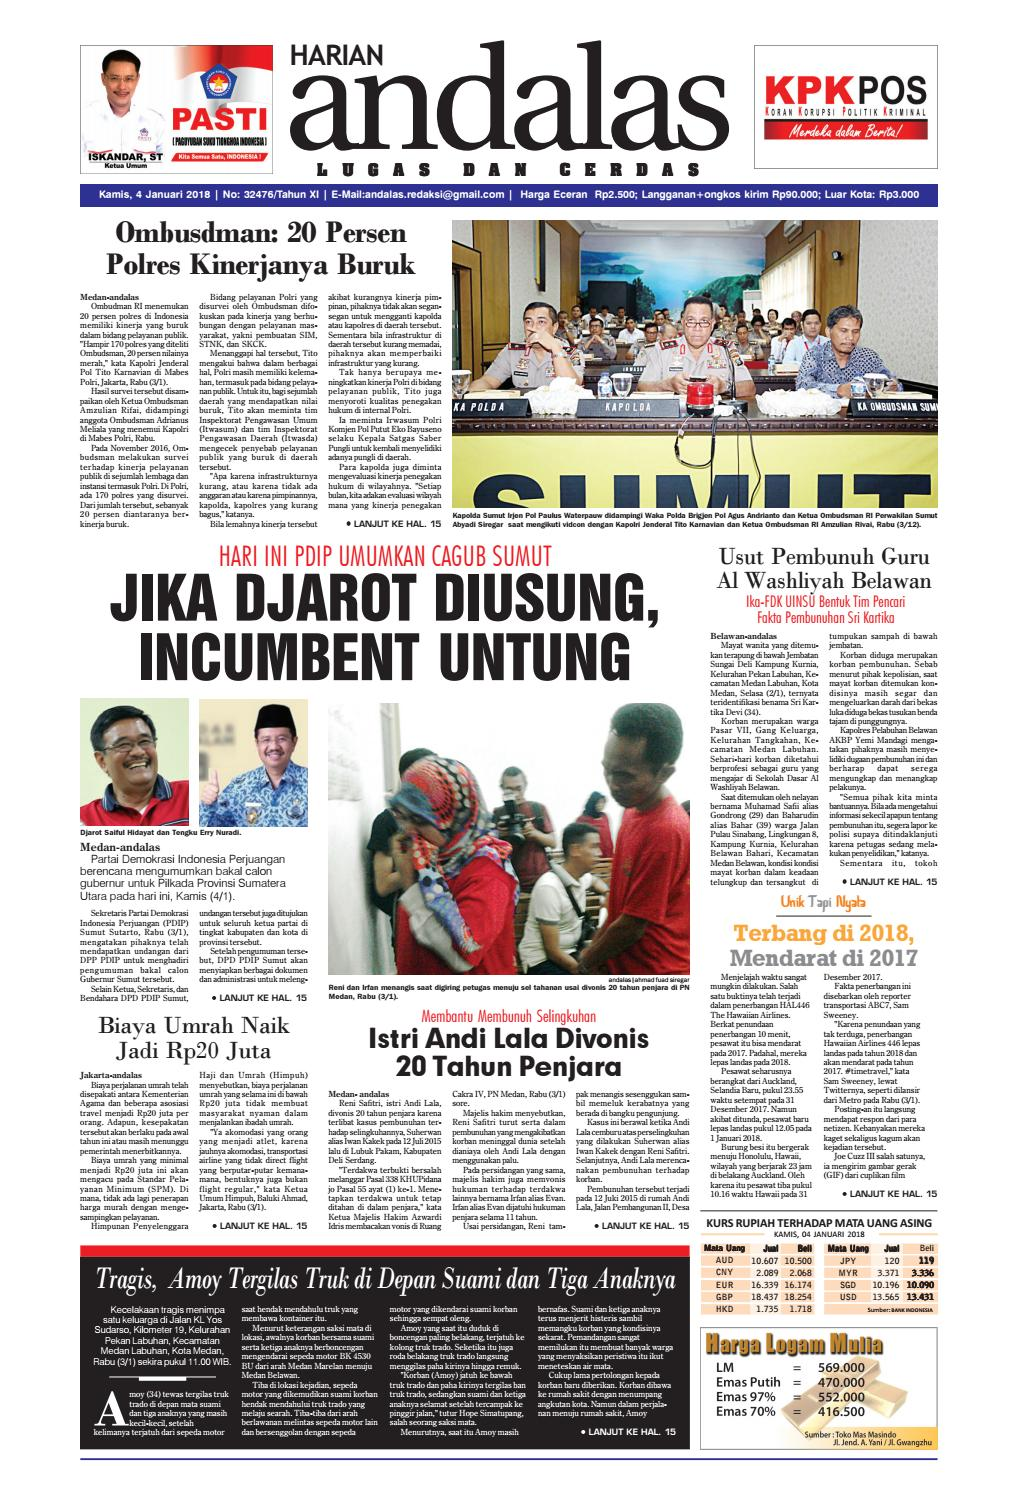 Epaper Andalas Edisi Kamis 4 Januari 2018 By Media Andalas Issuu